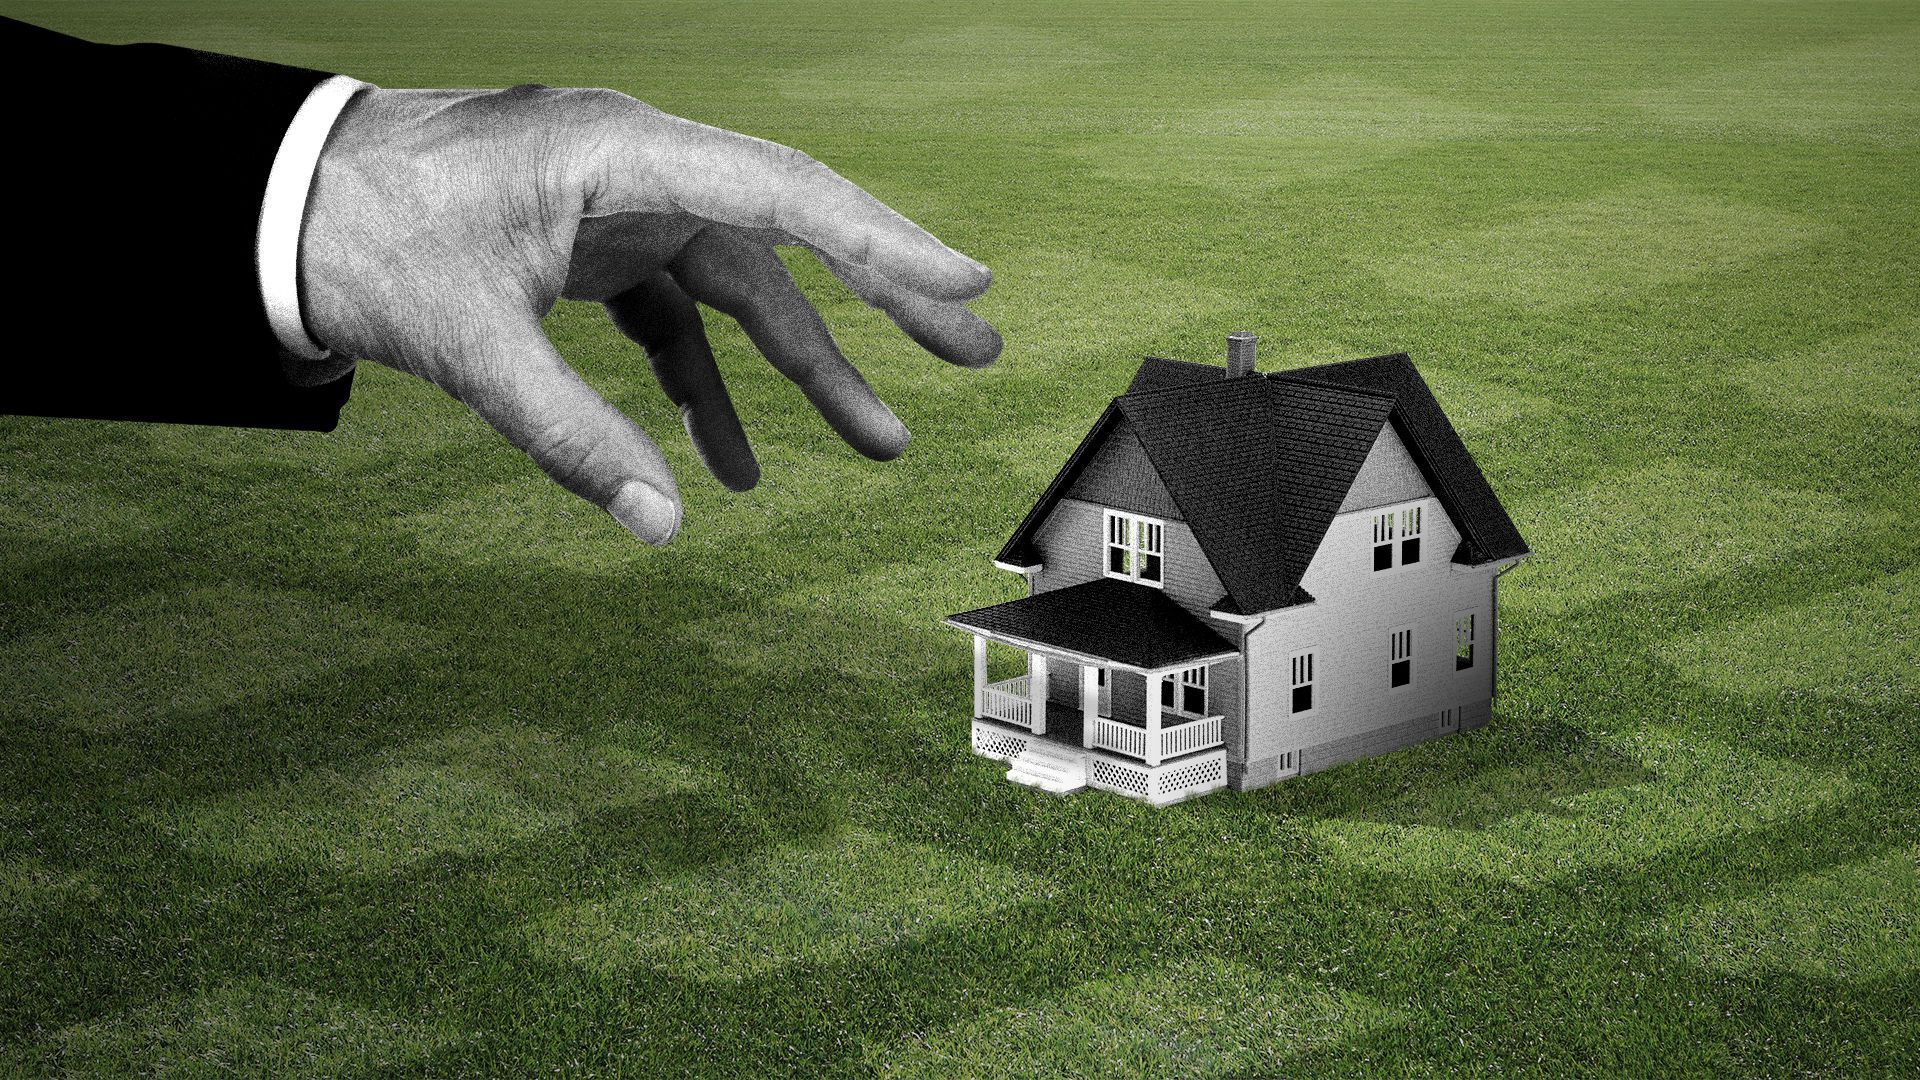 Illustration of a hand about to pick up the last house surrounded by leftover imprints of other long gone houses.